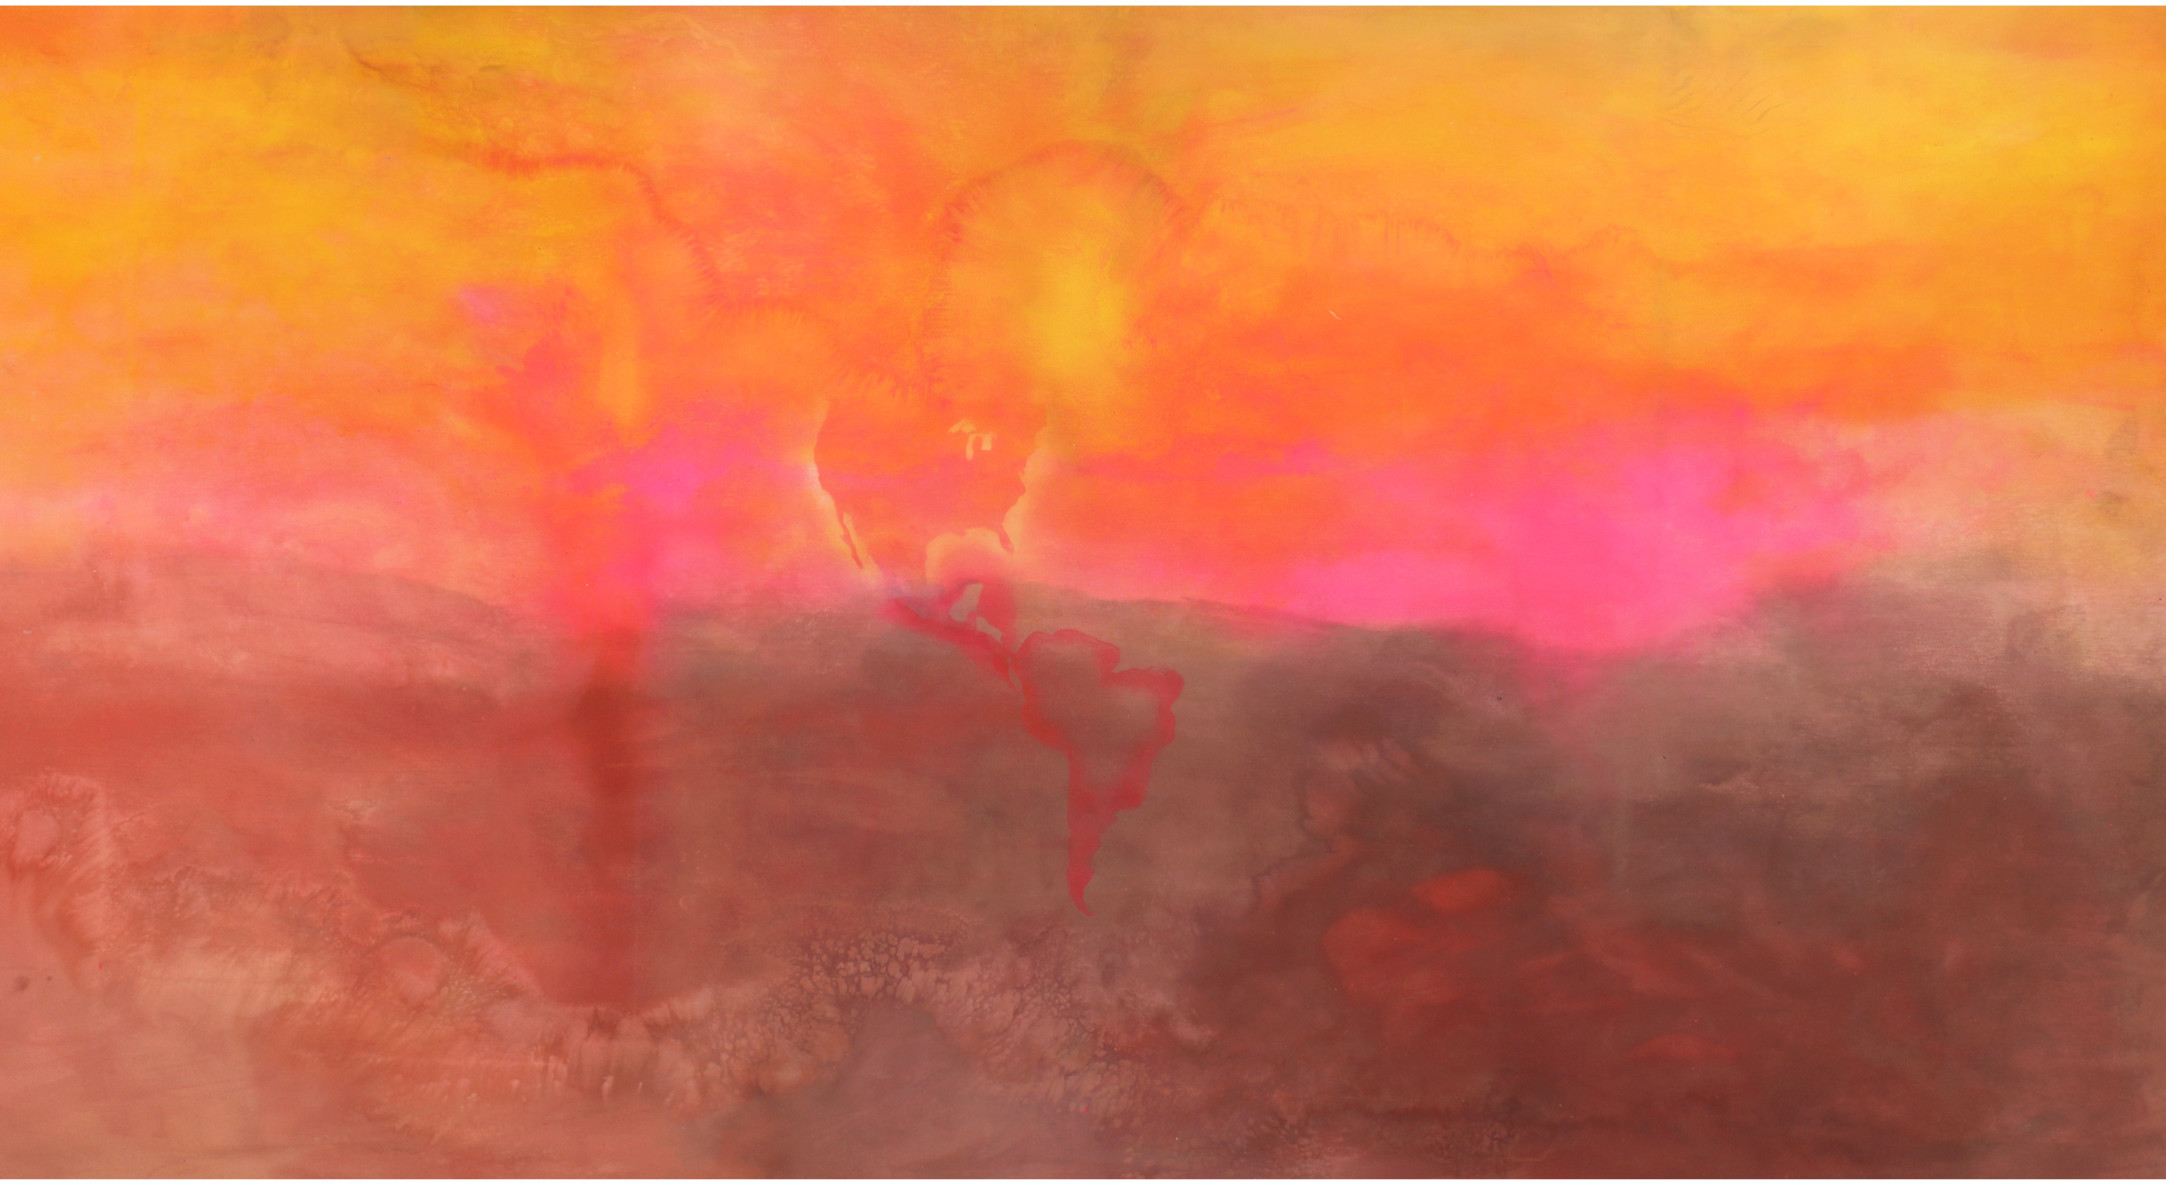 Frank Bowling, Texas Louise, 1971, Acrylic on canvas, 282 x 665 cm, 111 1/8 x 261 3/4 in